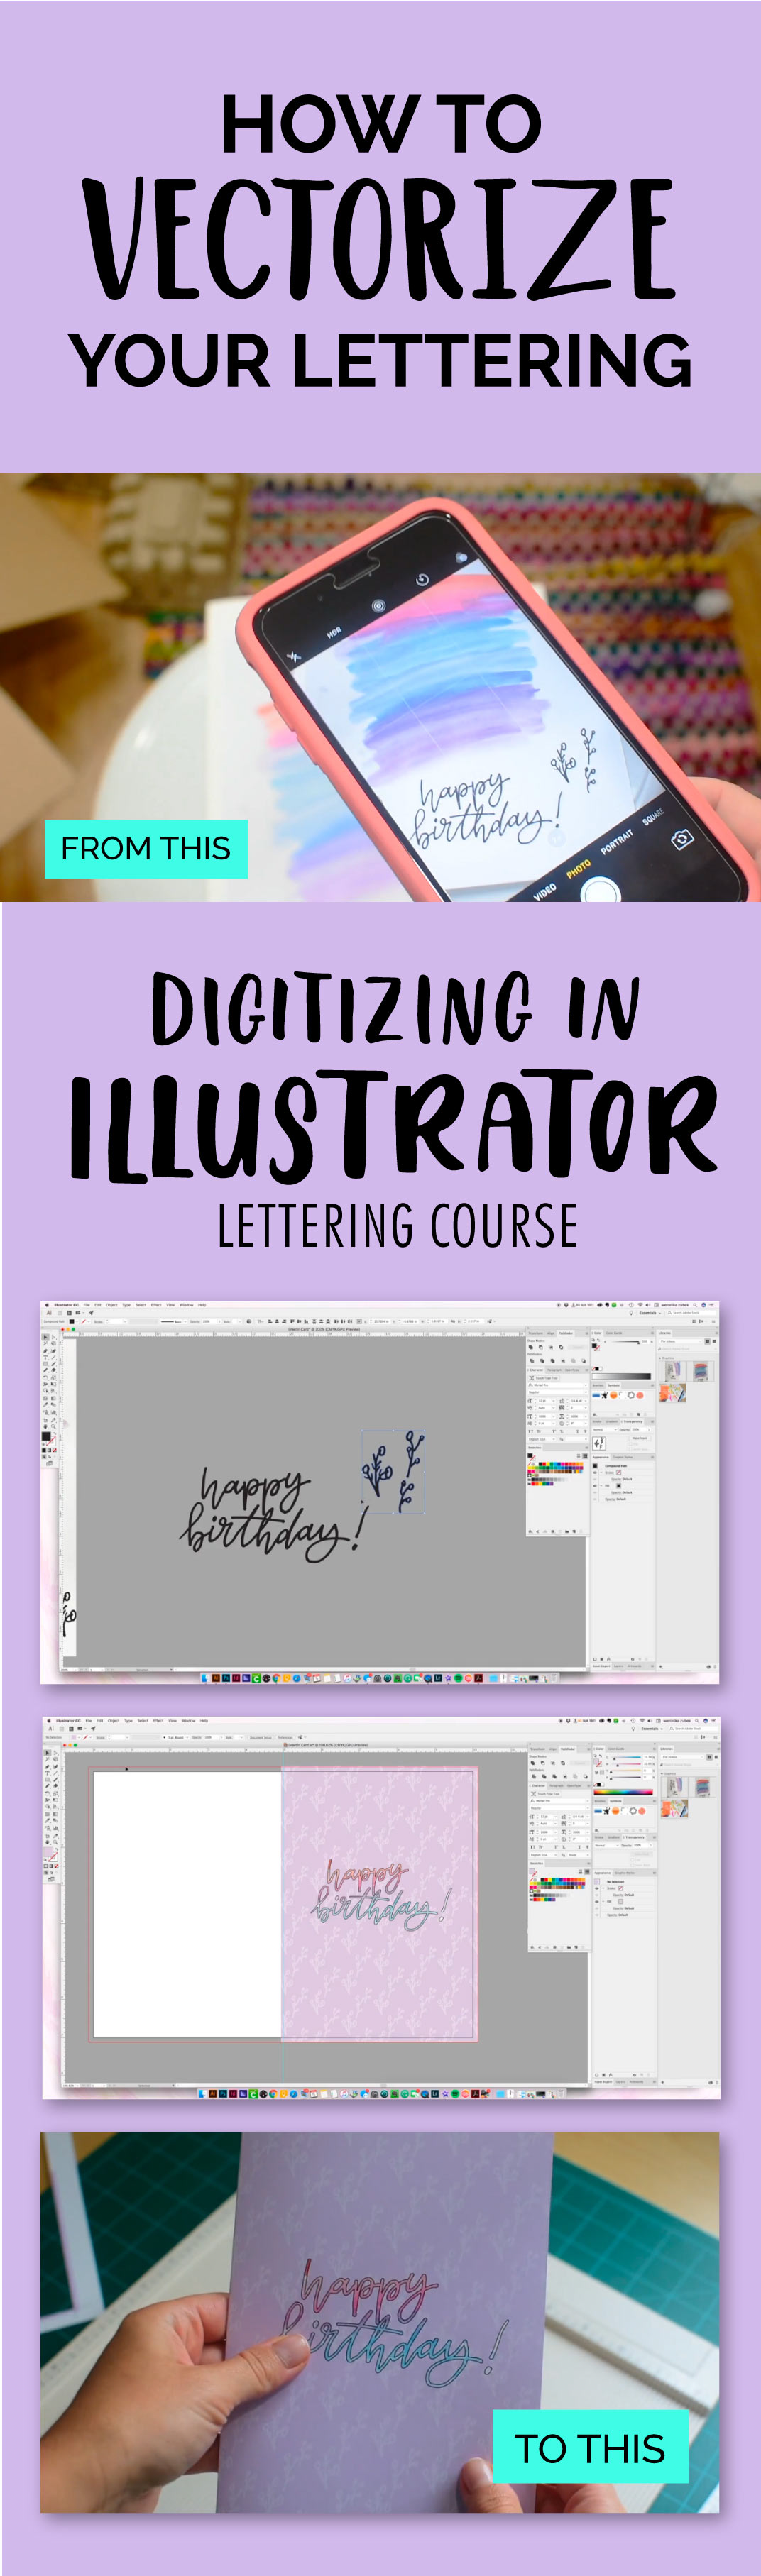 Learn how to digitize your lettering using Illustrator Course. Create your own greeting card, from simple lettering and watercolor to a finished birthday card, printed and ready to gift.